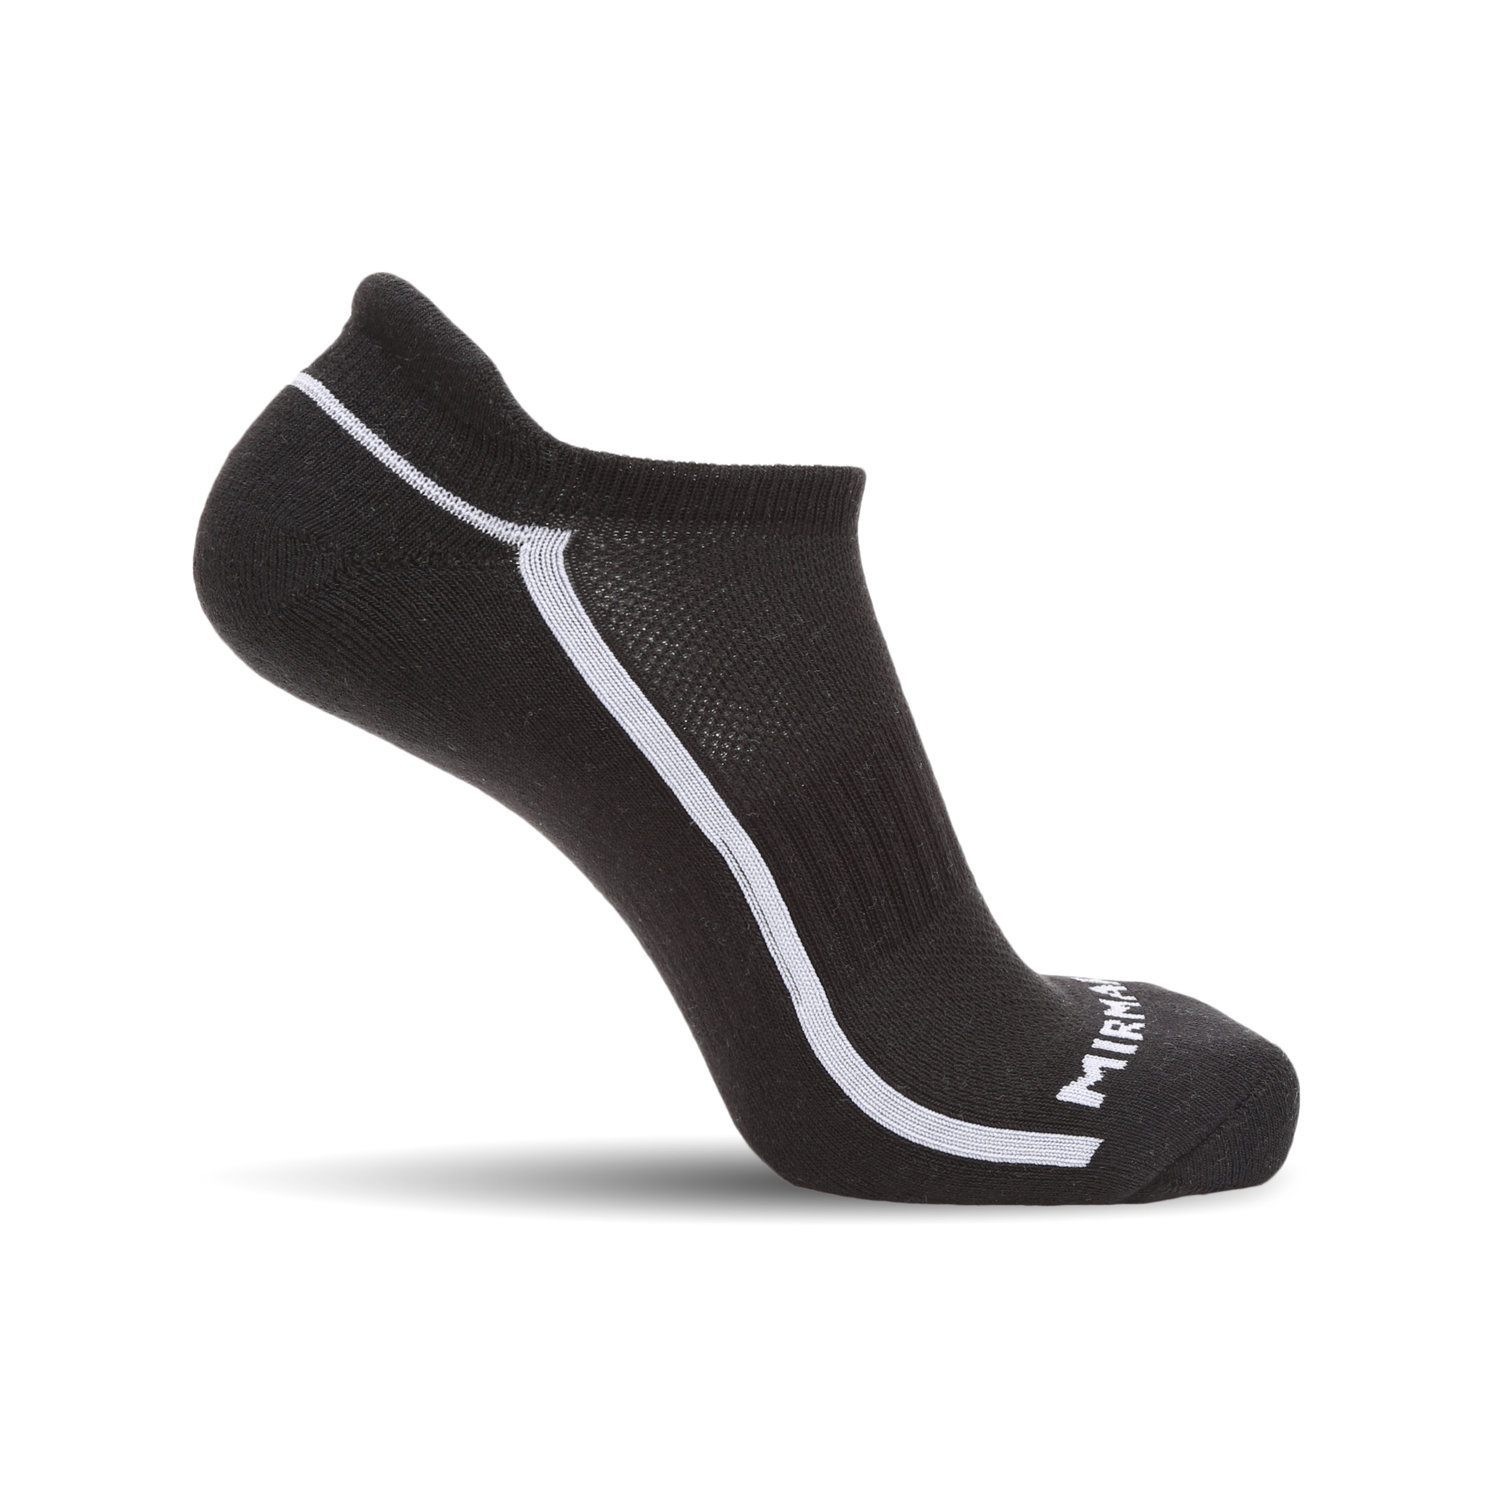 c6322dd4052a MIRMARU 6 Pairs Running No Show Low Cut Athletic Cushion Tab Breathable  Comfortable Cotton Socks for Men and Women